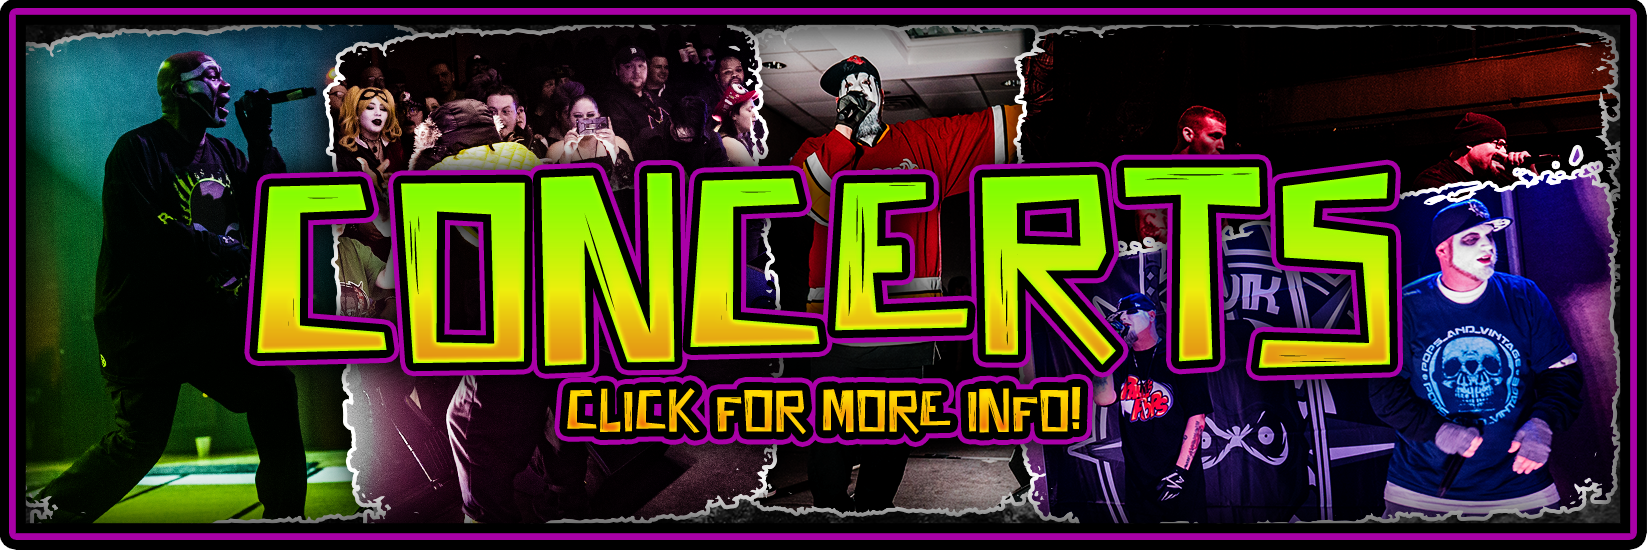 Astronomicon-2-Concerts-Banner-ClickHere.png